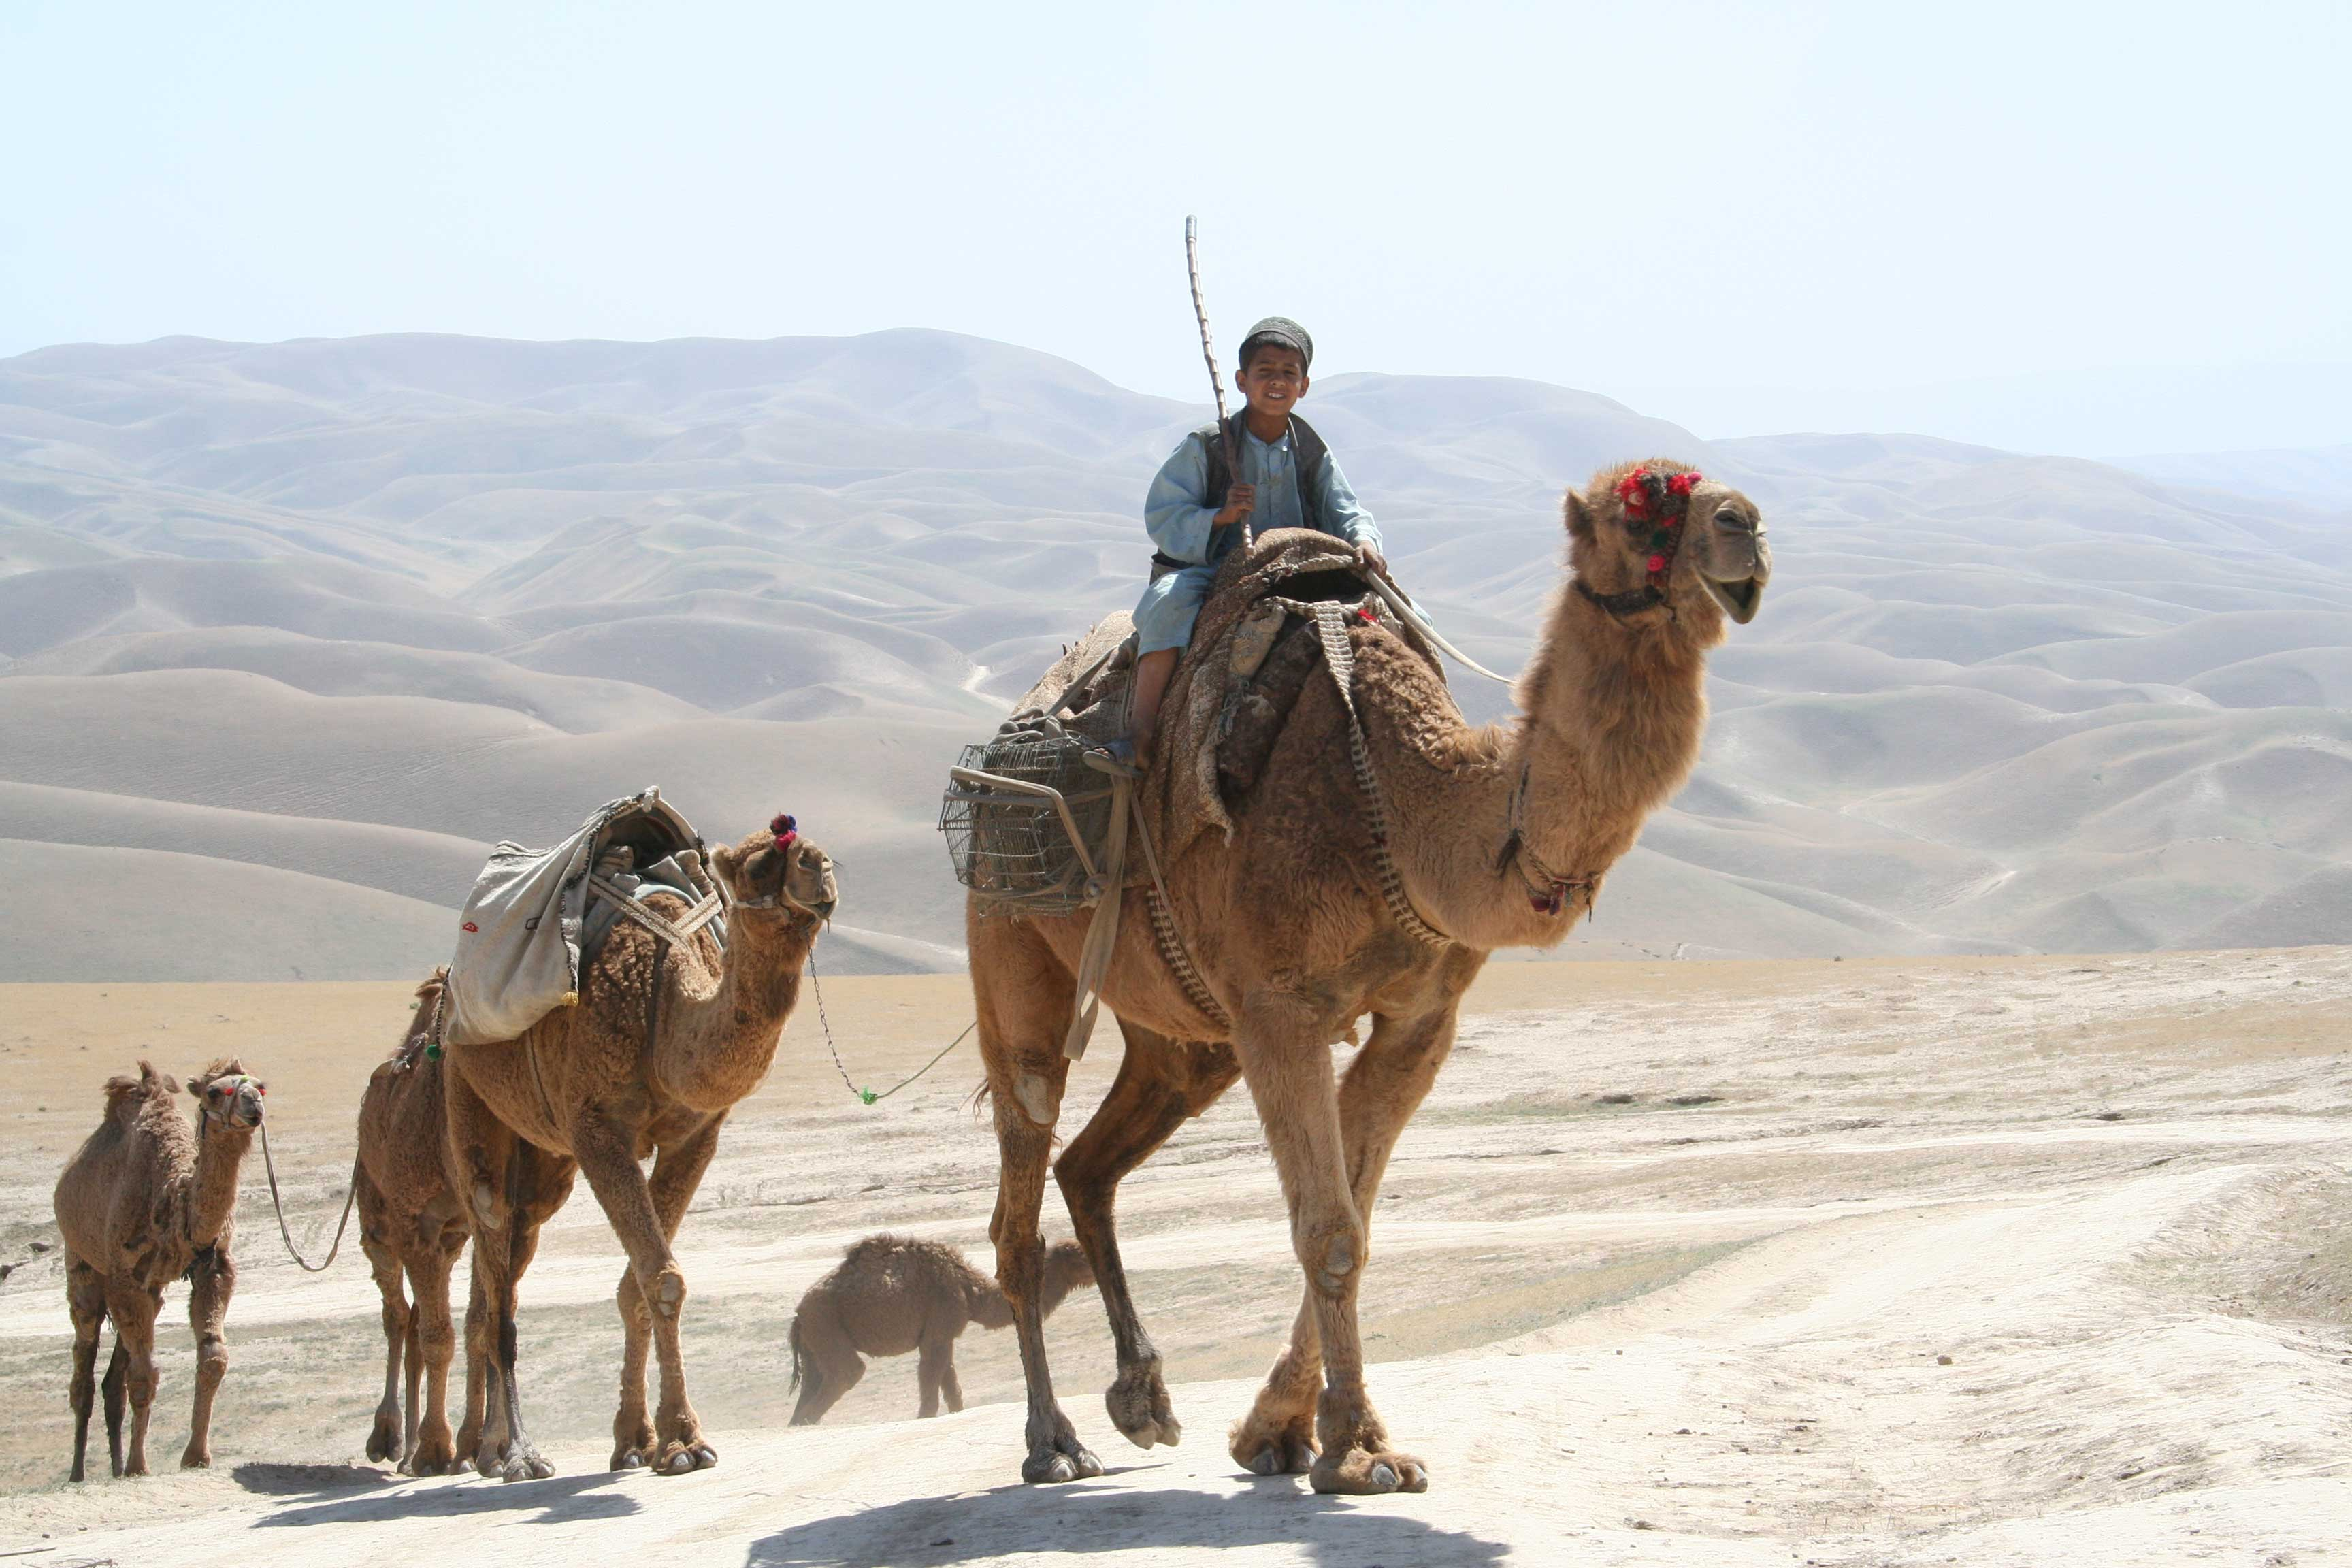 A Kuchi boy leads his herd of camels through the Afghanistan desert.